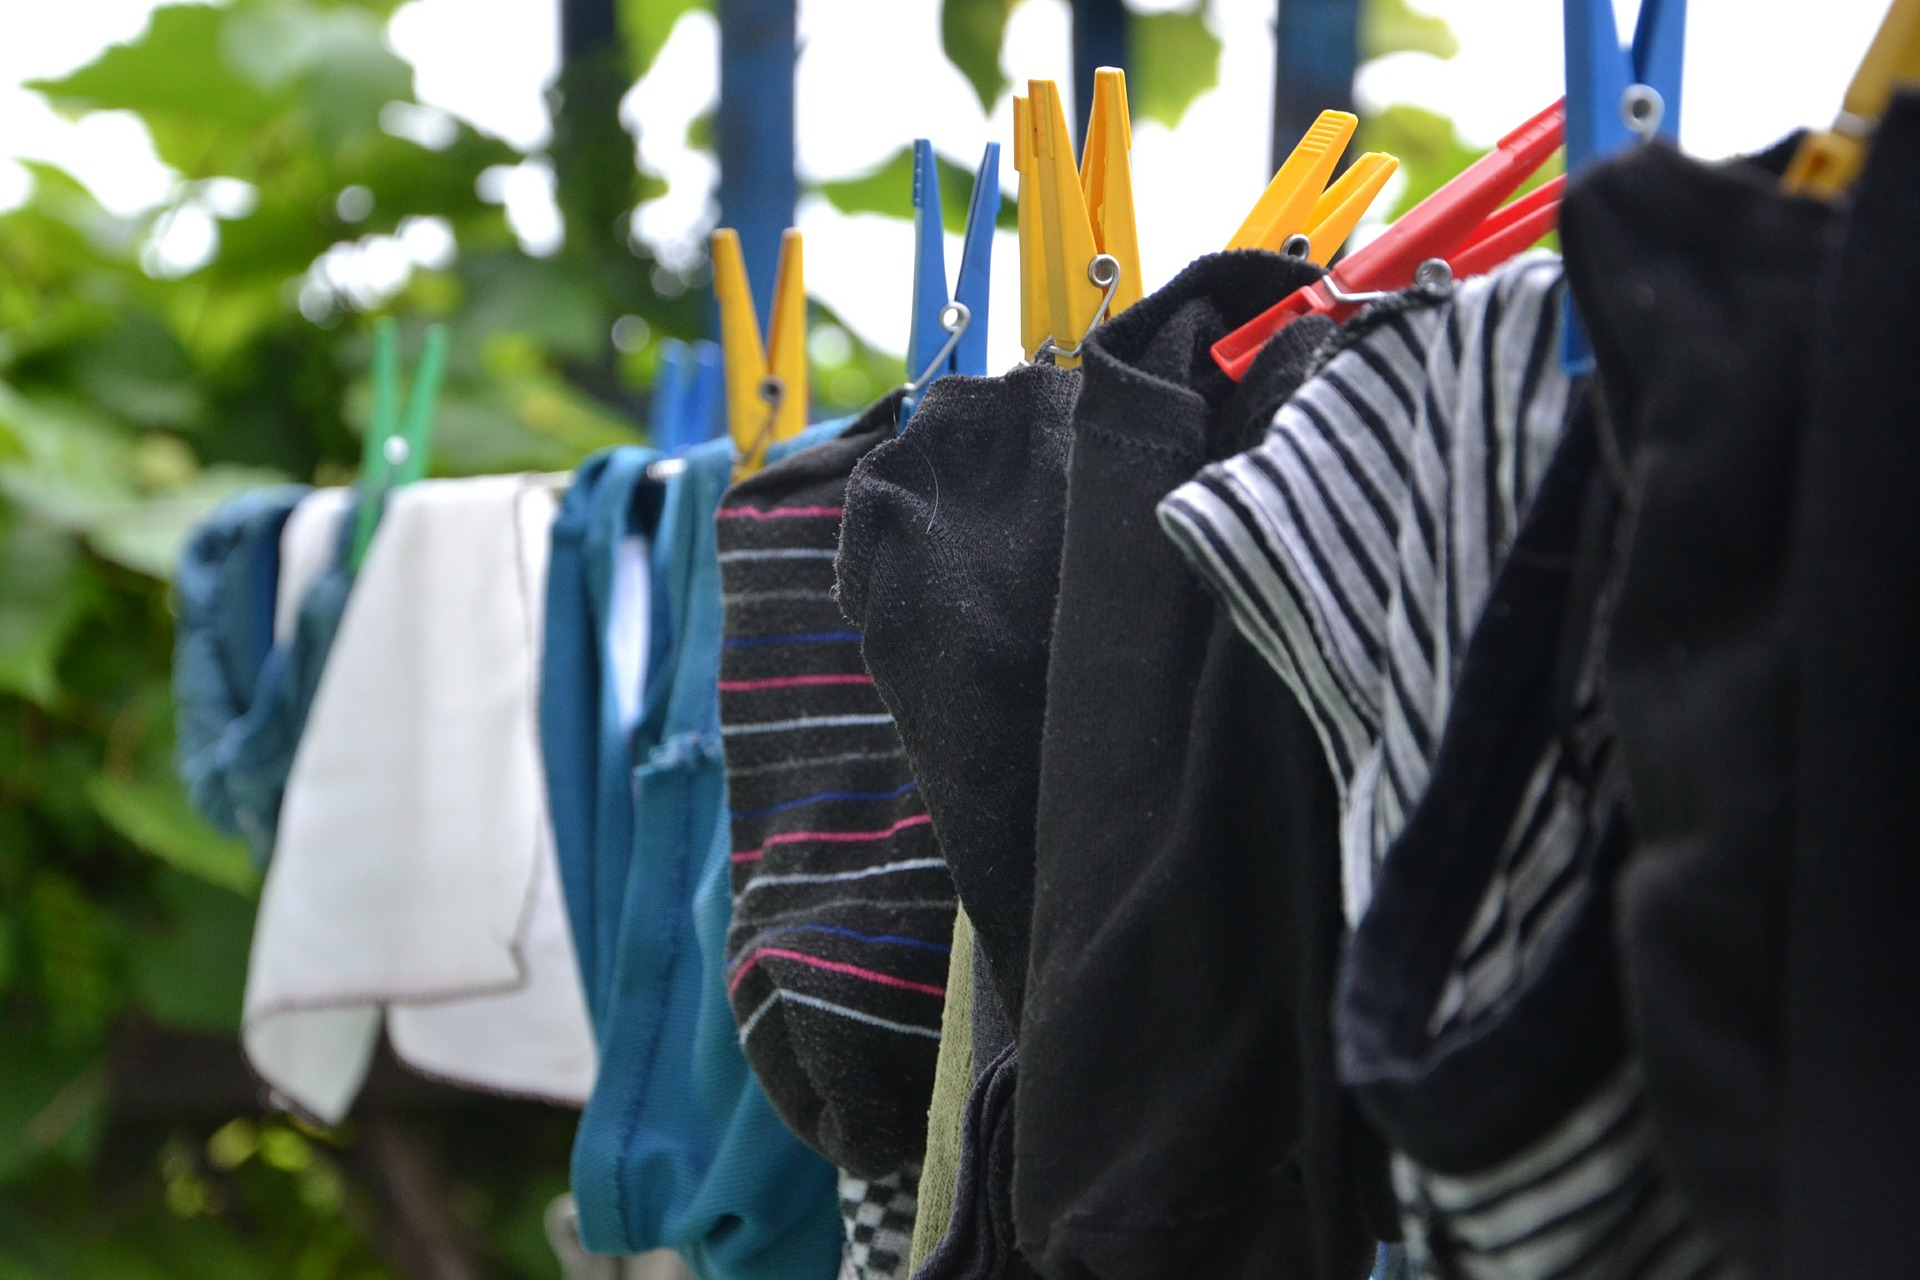 A Guide To Storing Winter Clothes During The Summer